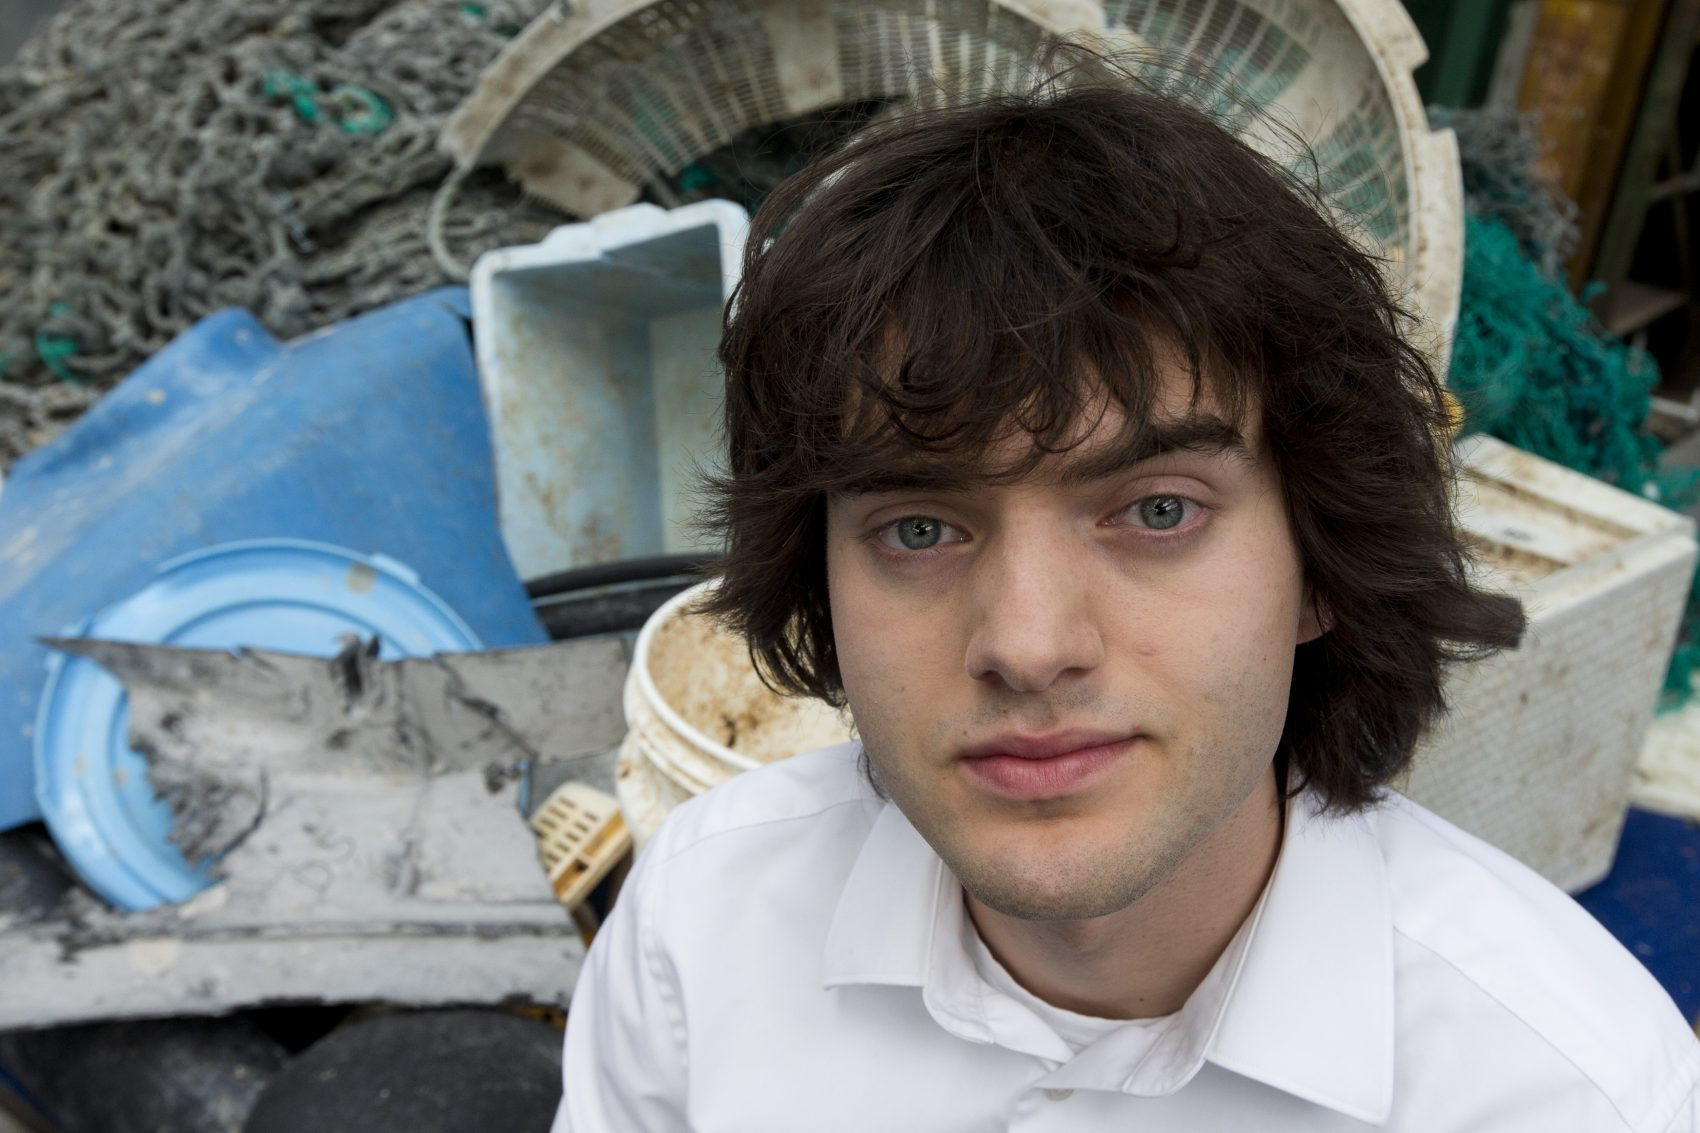 Dutch university dropout Boyan Slat, who founded the The Ocean Cleanup, poses for a portrait next to a pile of plastic garbage prior to a press presentation in Utrecht, Netherlands, Thursday, May 11, 2017. The foundation aiming to rid the world's oceans of plastic says it will start cleaning up the huge patch of floating junk known as the Great Pacific Garbage Patch within the next 12 months, two years ahead of schedule. (Peter Dejong/AP)